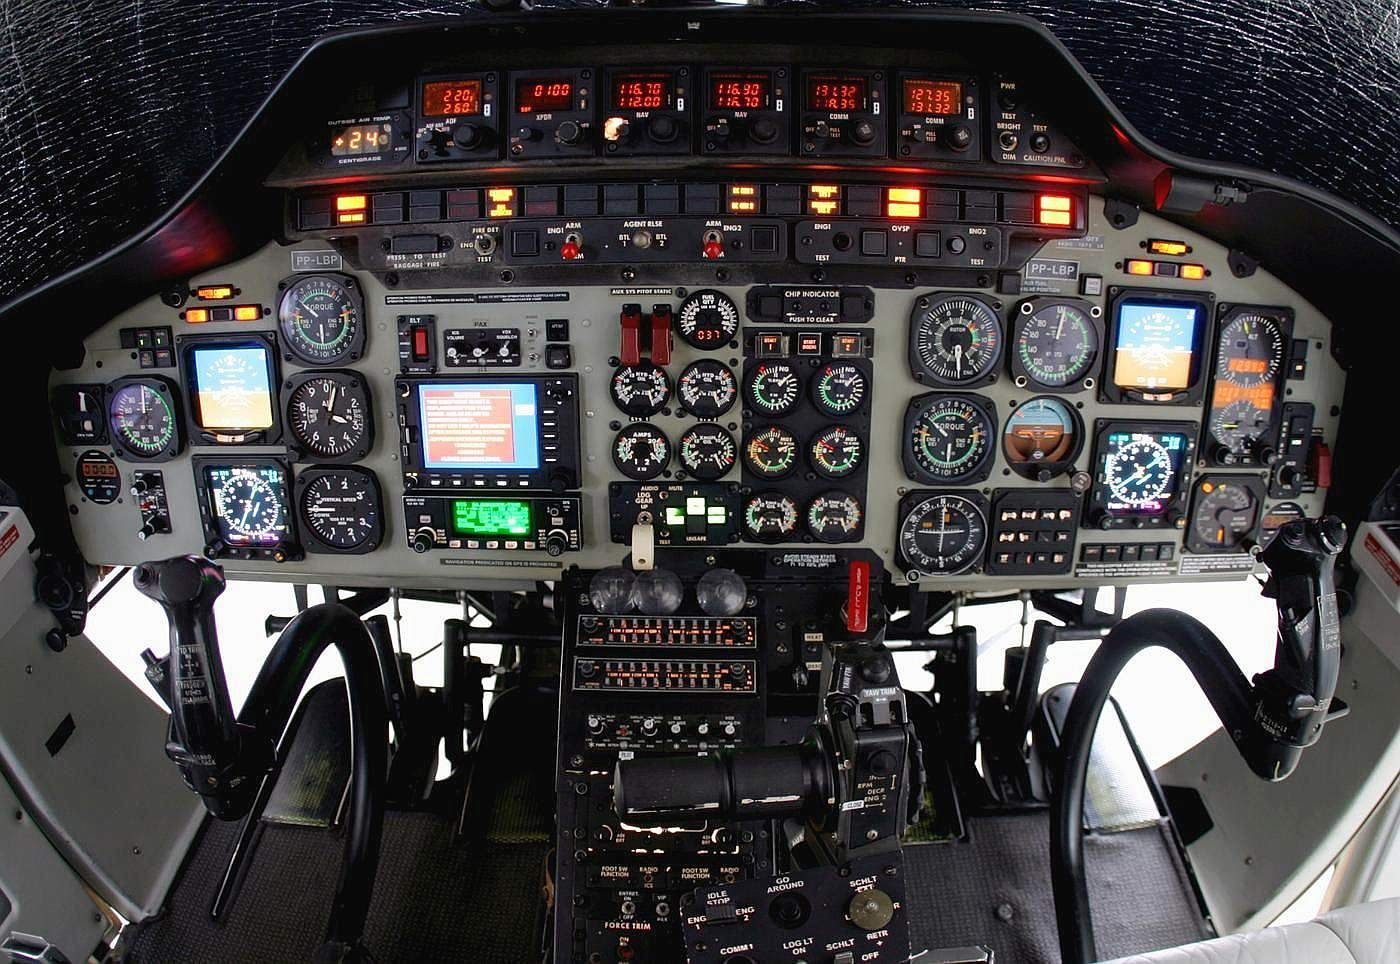 The Cockpit Of The Bell 320 Turbine Powered Helicopter Cockpit